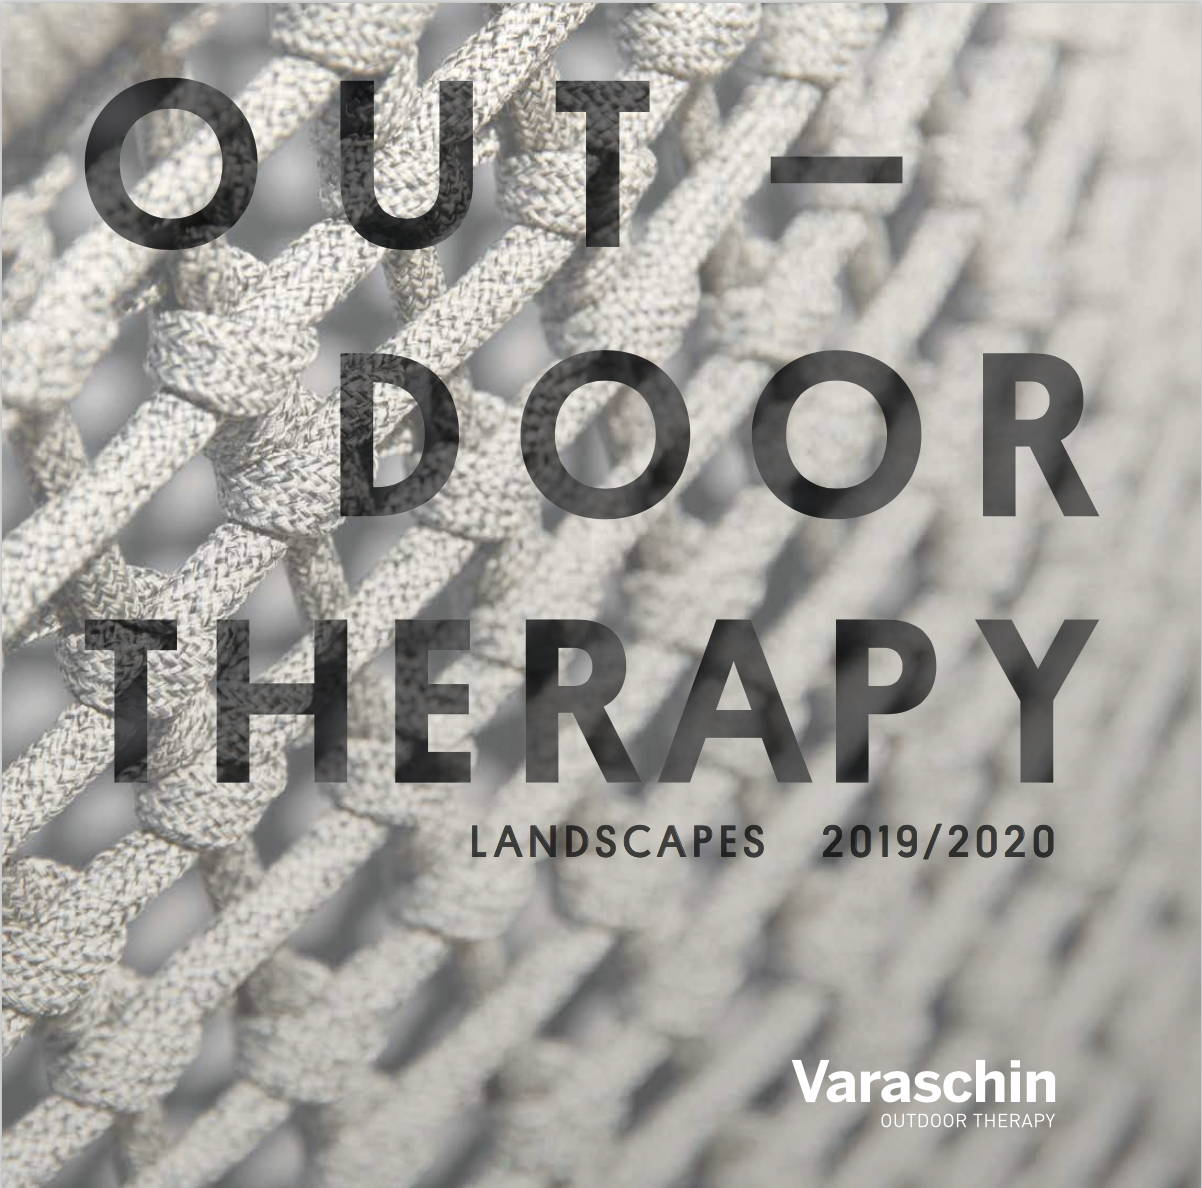 Varaschin Outdoor therapy 2019